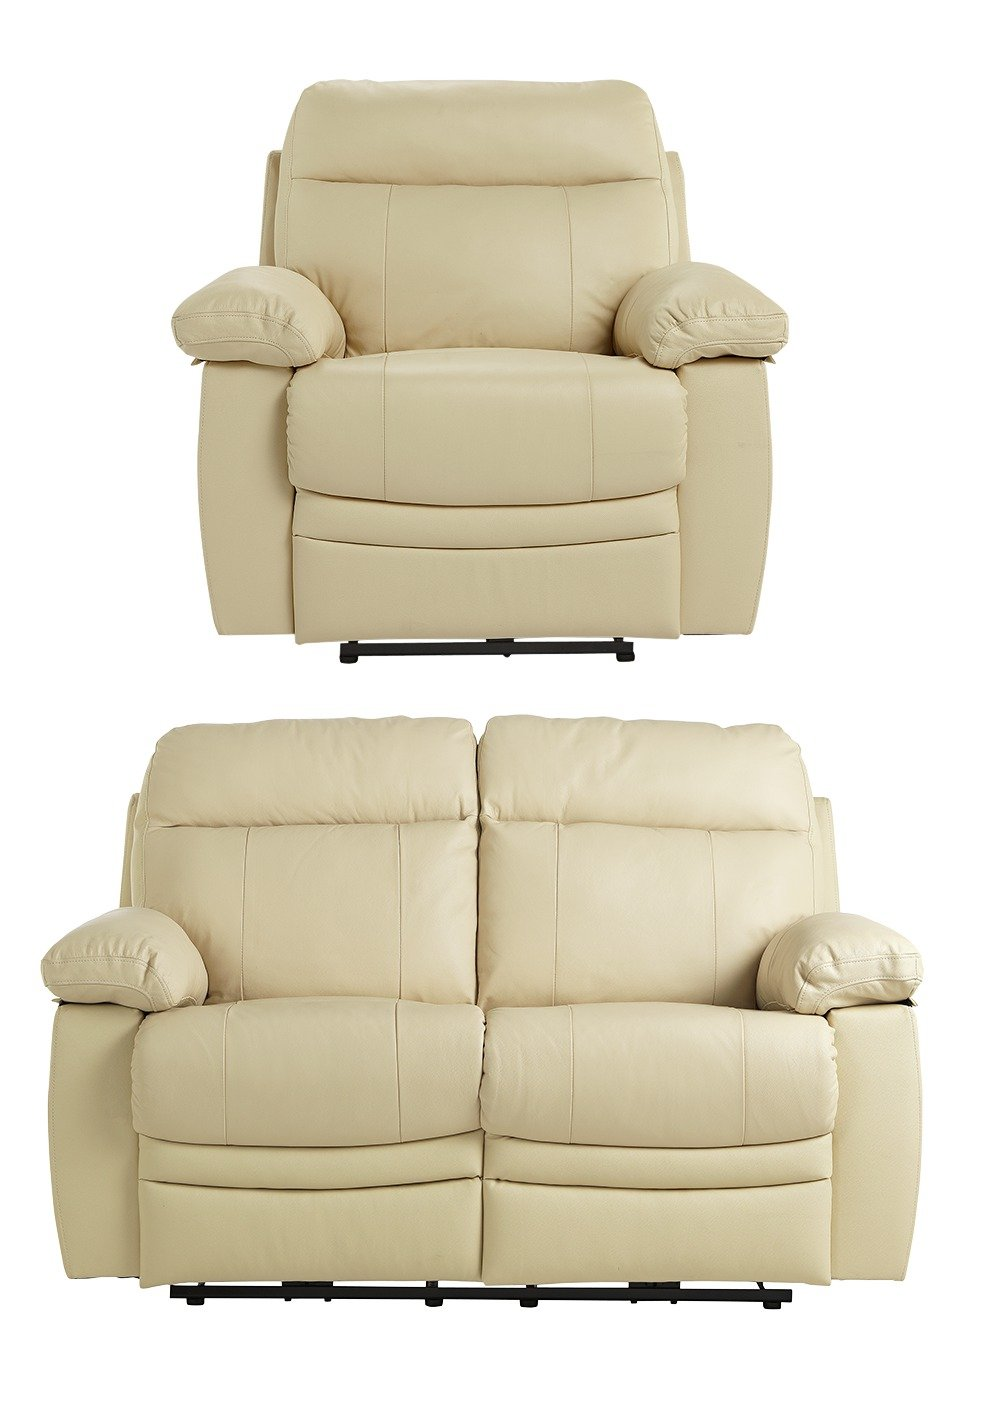 Argos Home - New Paolo Reg Power Recliner - Sofa/Chair - Ivory